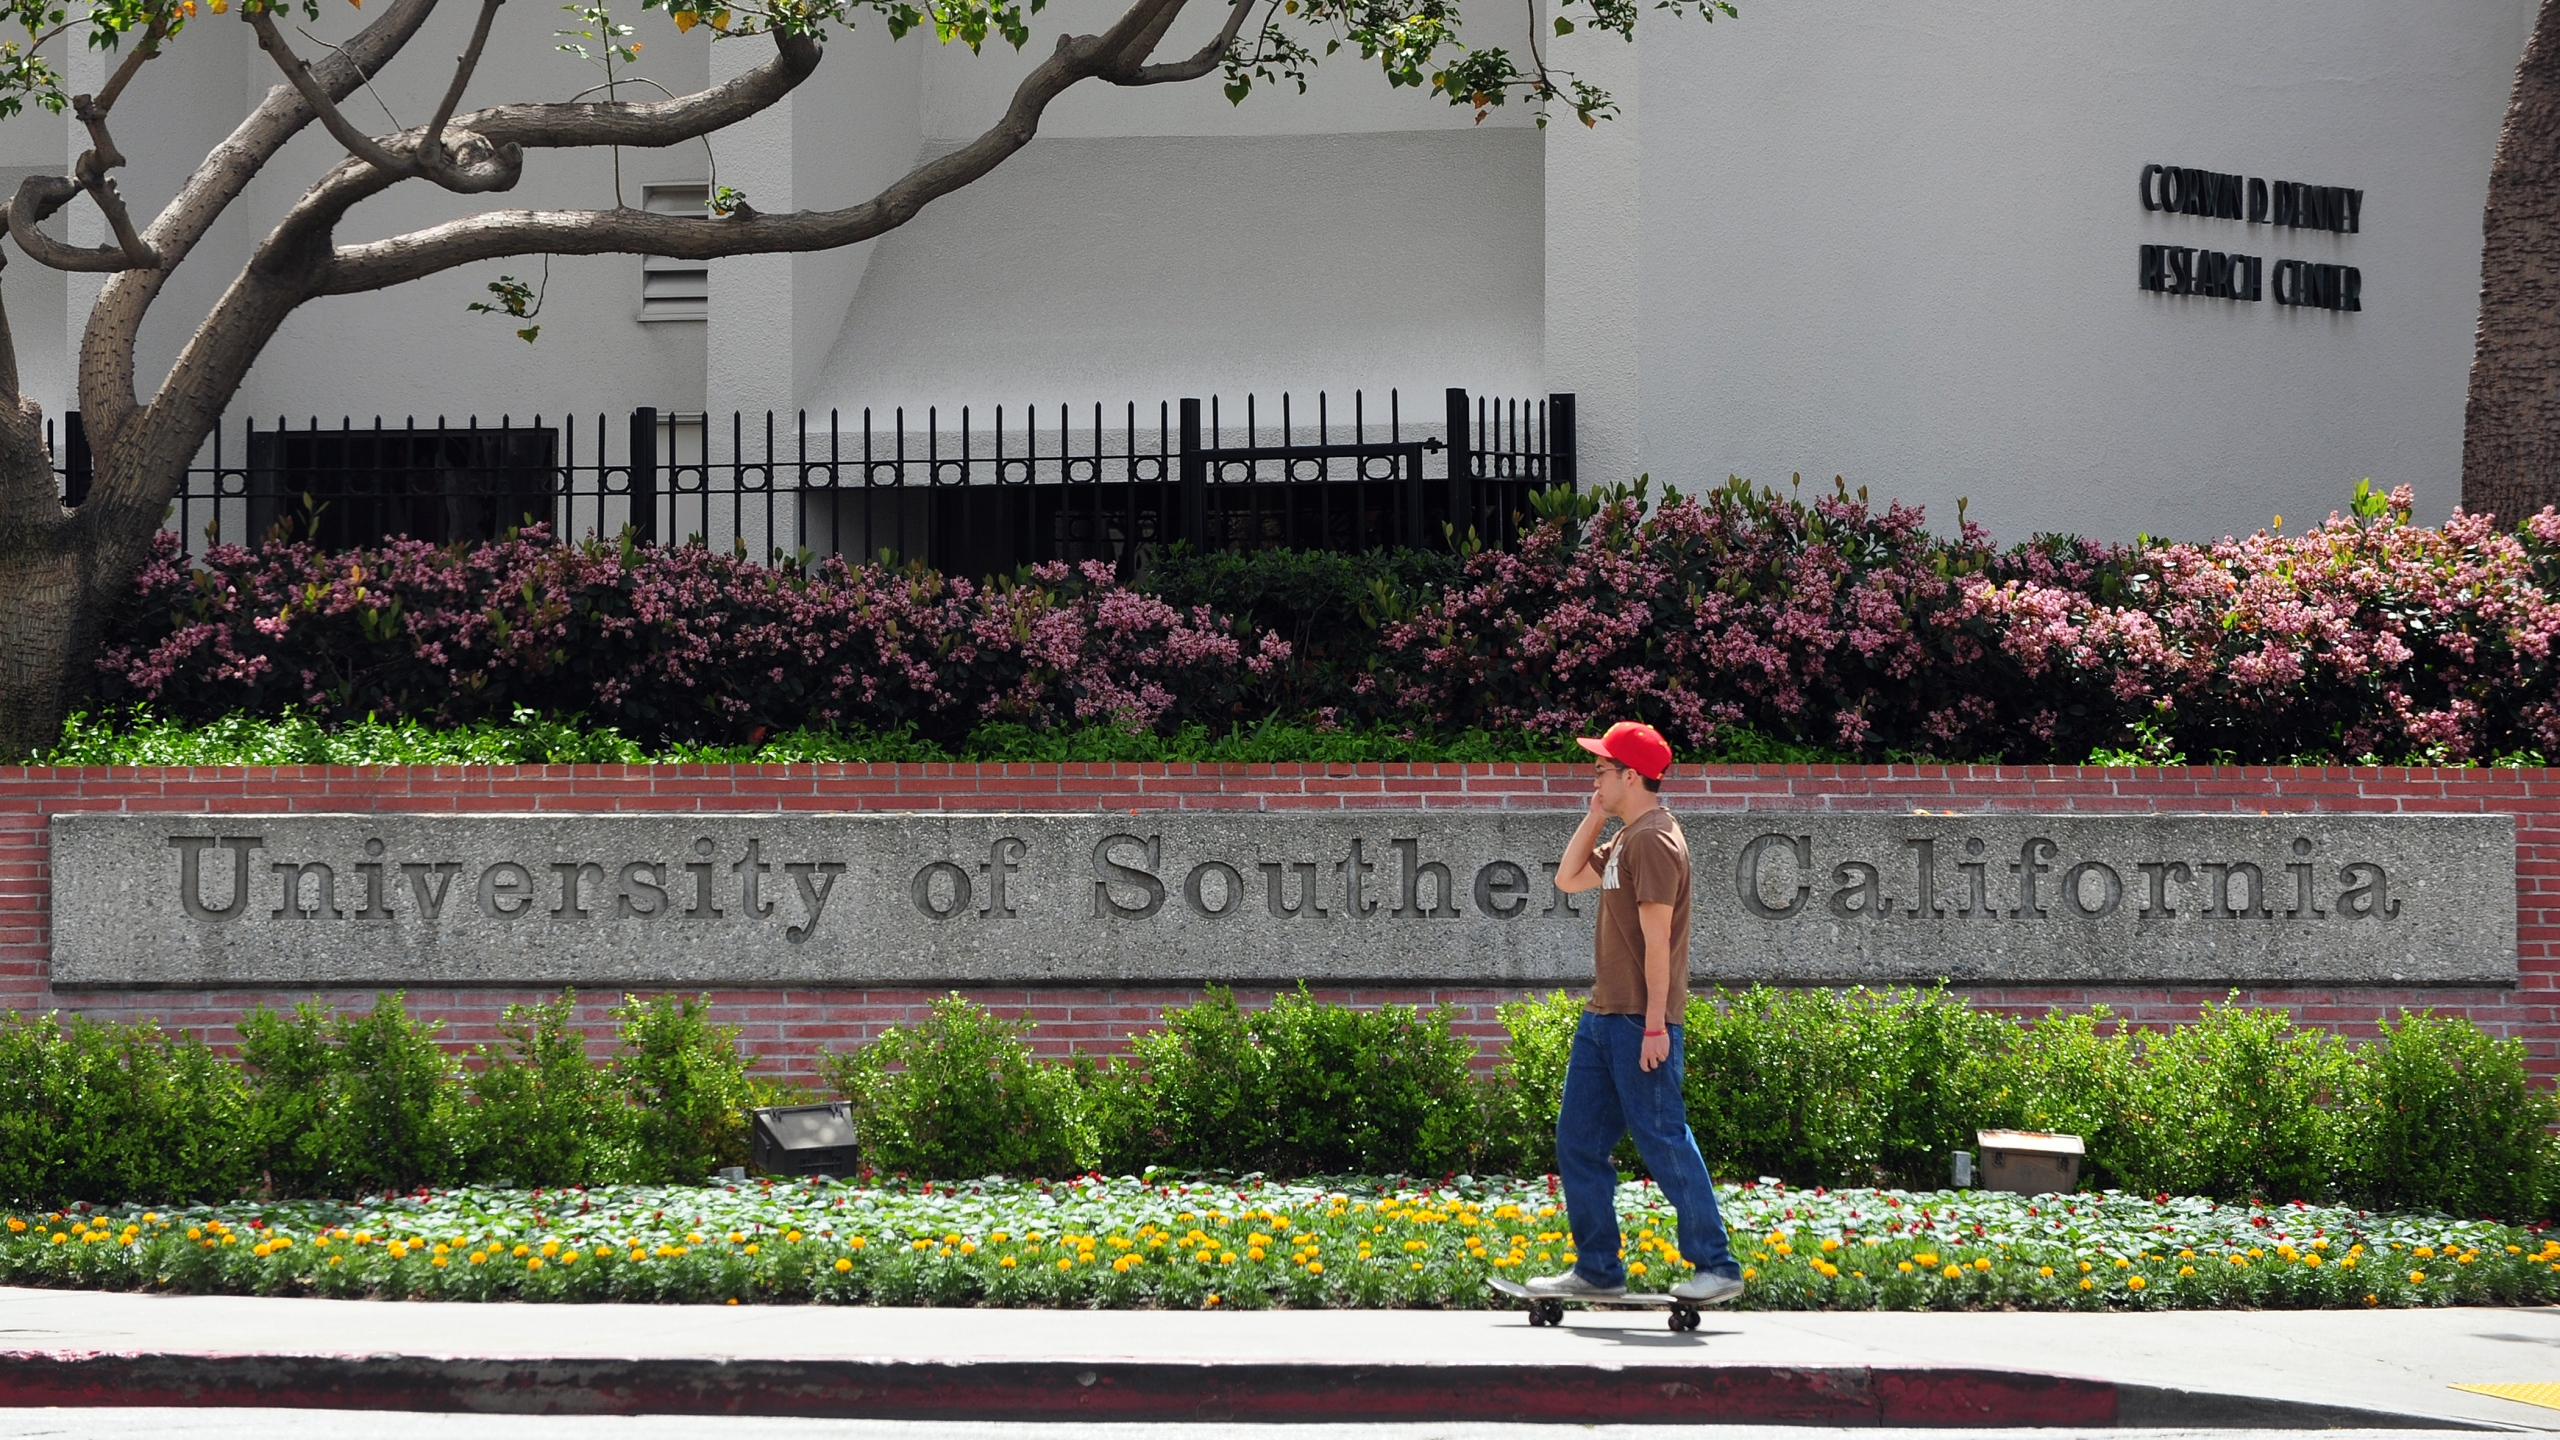 University of Southern California (USC) campus in Los Angeles. (Credit: FREDERIC J. BROWN/AFP via Getty Images)